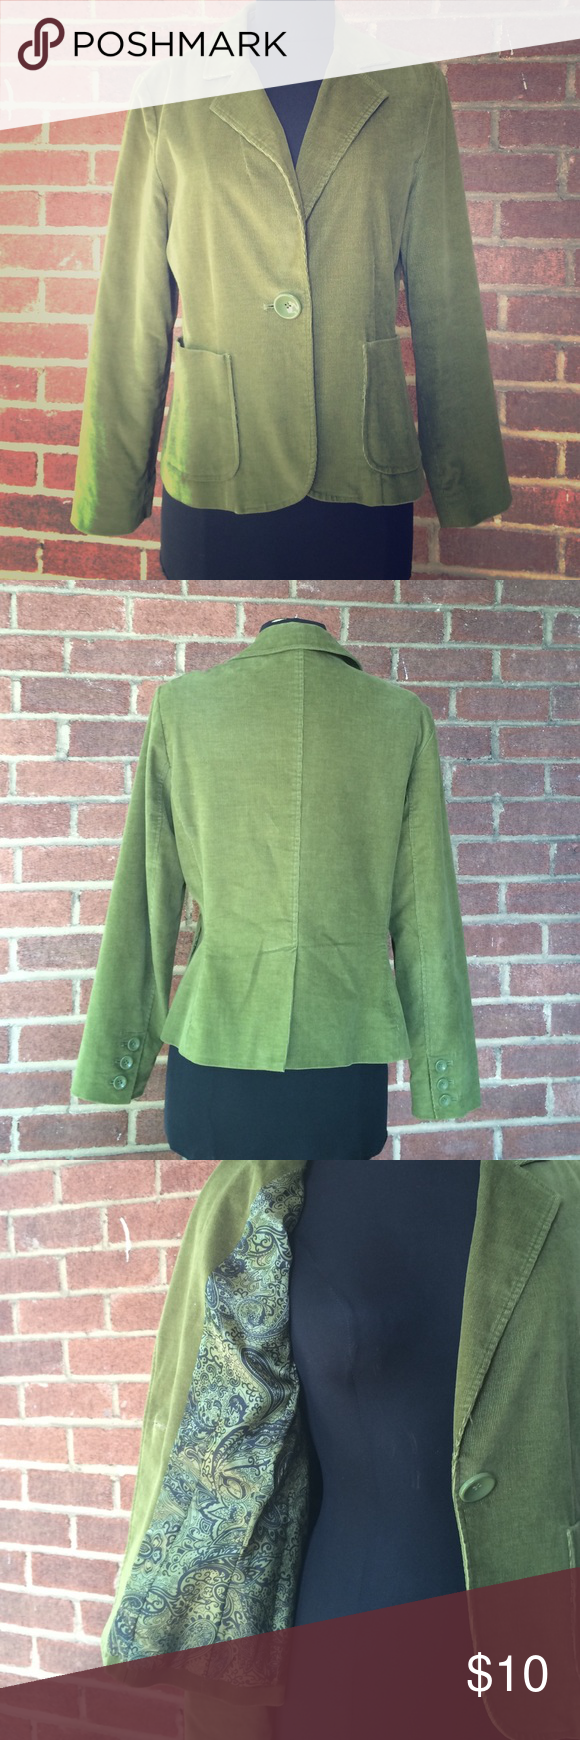 """Olive Green Corduroy Blazer Olive green corduroy blazer with single button closure. Two patch pockets. Lining is satin with a paisley print. Fabric has some stretch for ease of fit.  Chest measures 41.5"""". Larry Levine Jackets & Coats Blazers"""